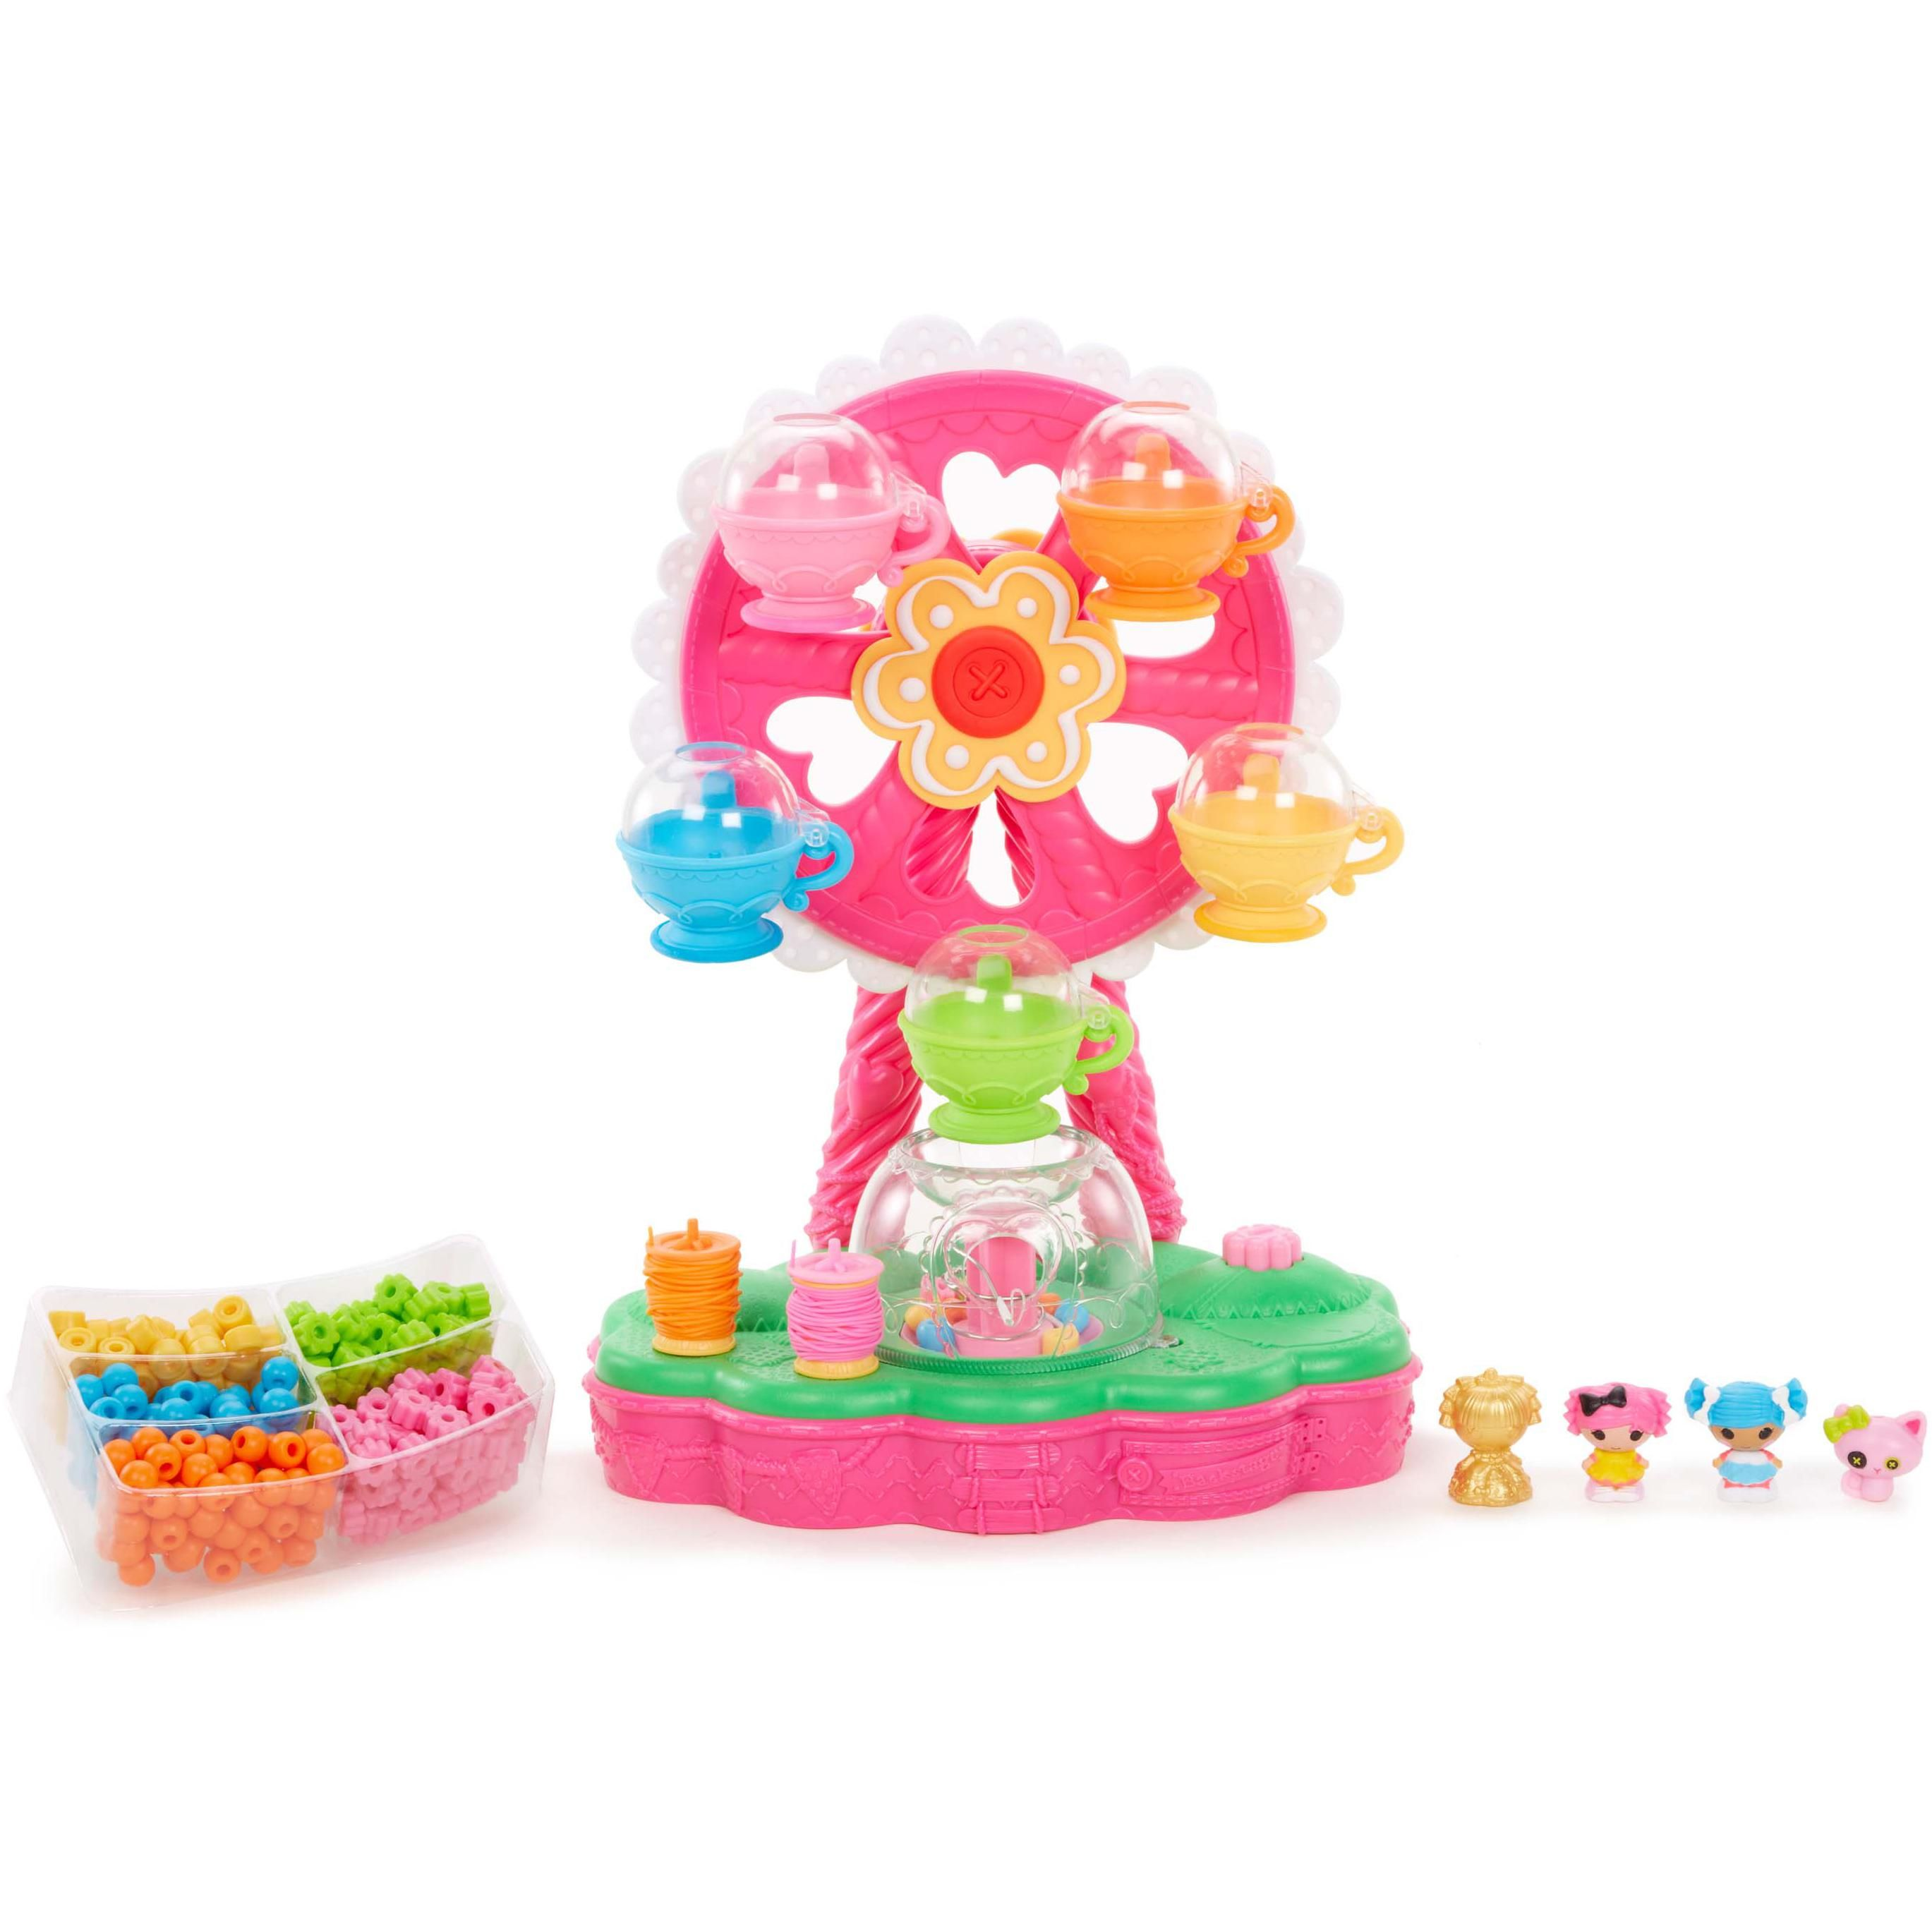 Amazon.com: Lalaloopsy Tinies Jewelry Maker Playset: Toys & Games ...